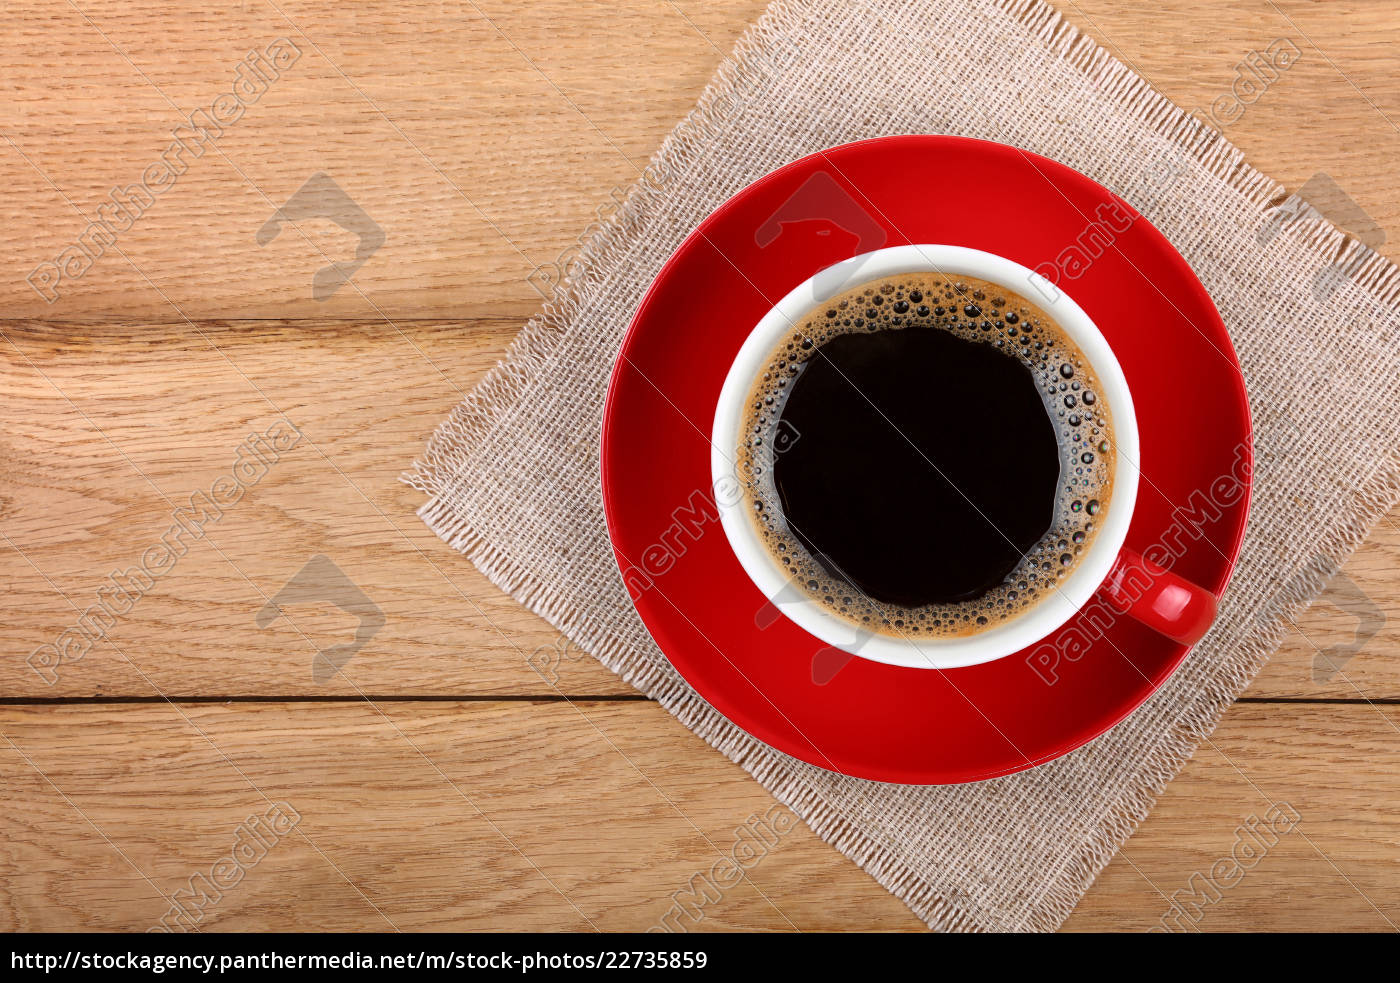 full, cup, of, black, coffee, in - 22735859